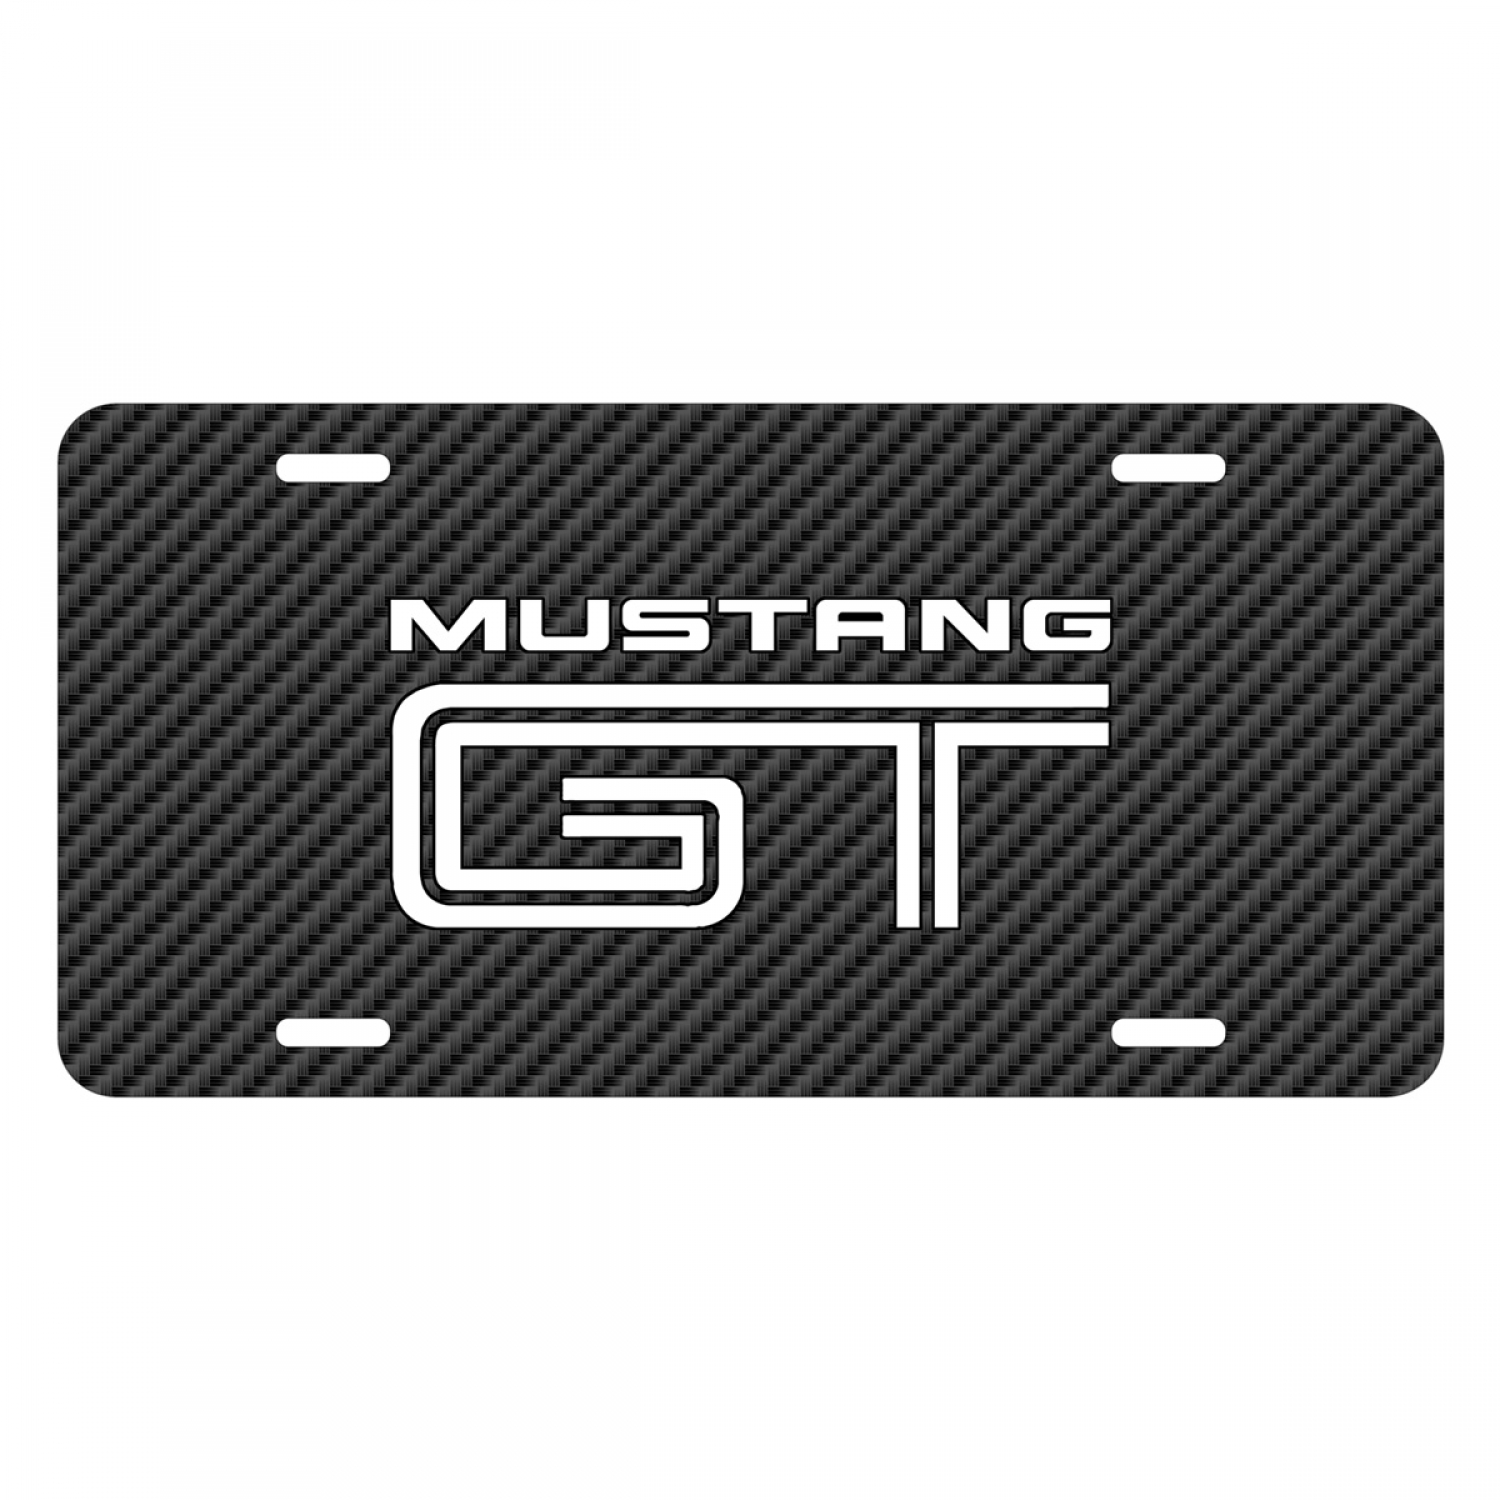 Ford Mustang GT Black Carbon Fiber Texture Graphic UV Metal License Plate